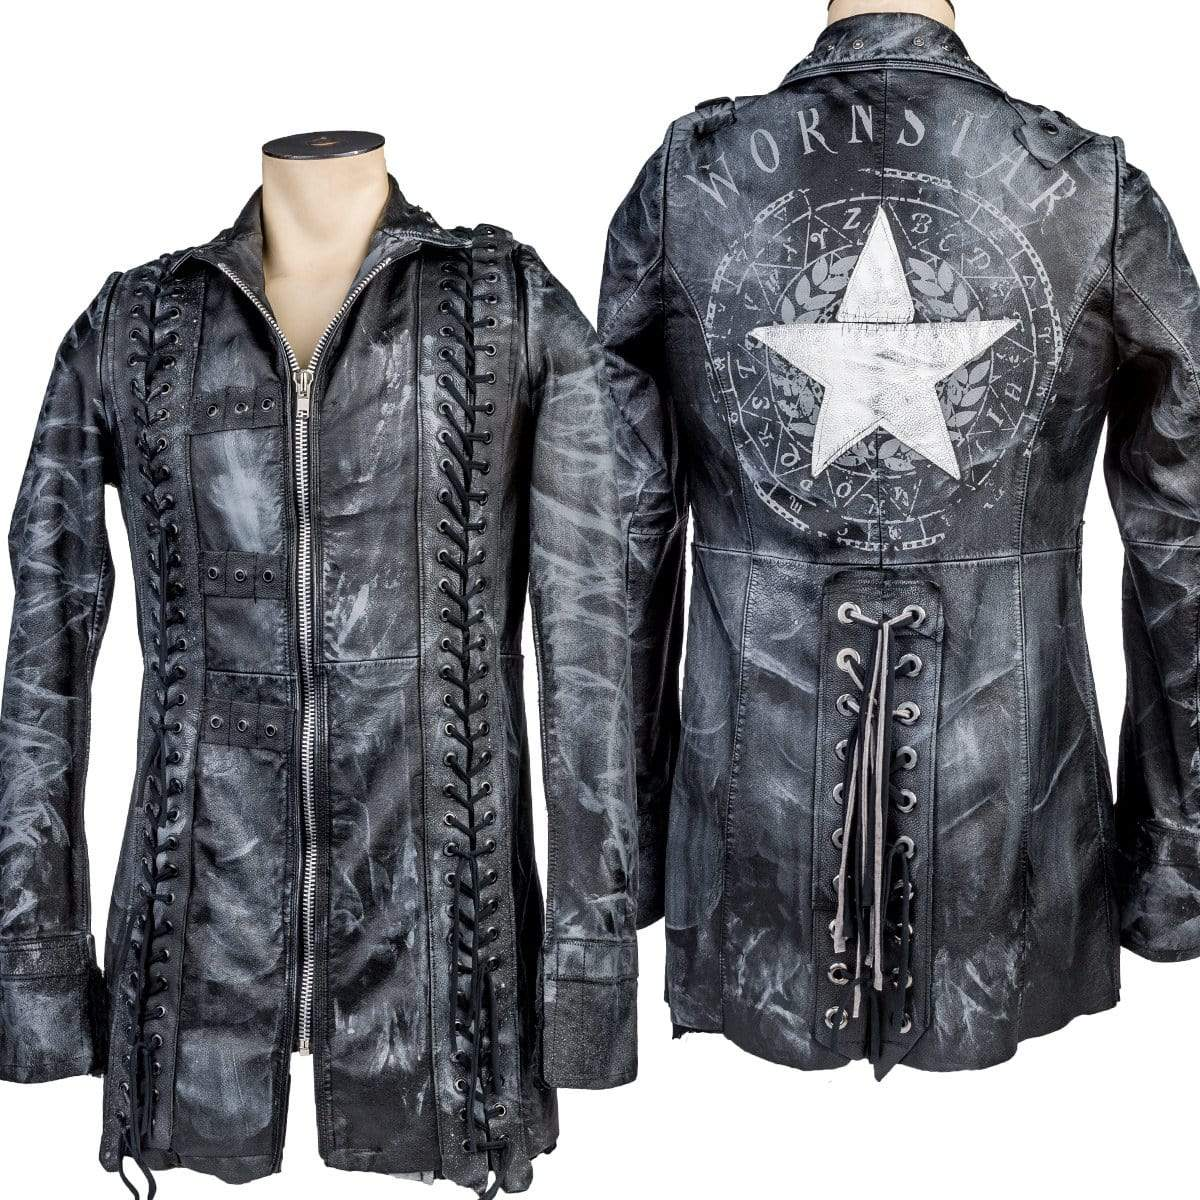 Wornstar Clothing White Star custom jacket. Patchwork leather with custom printing.